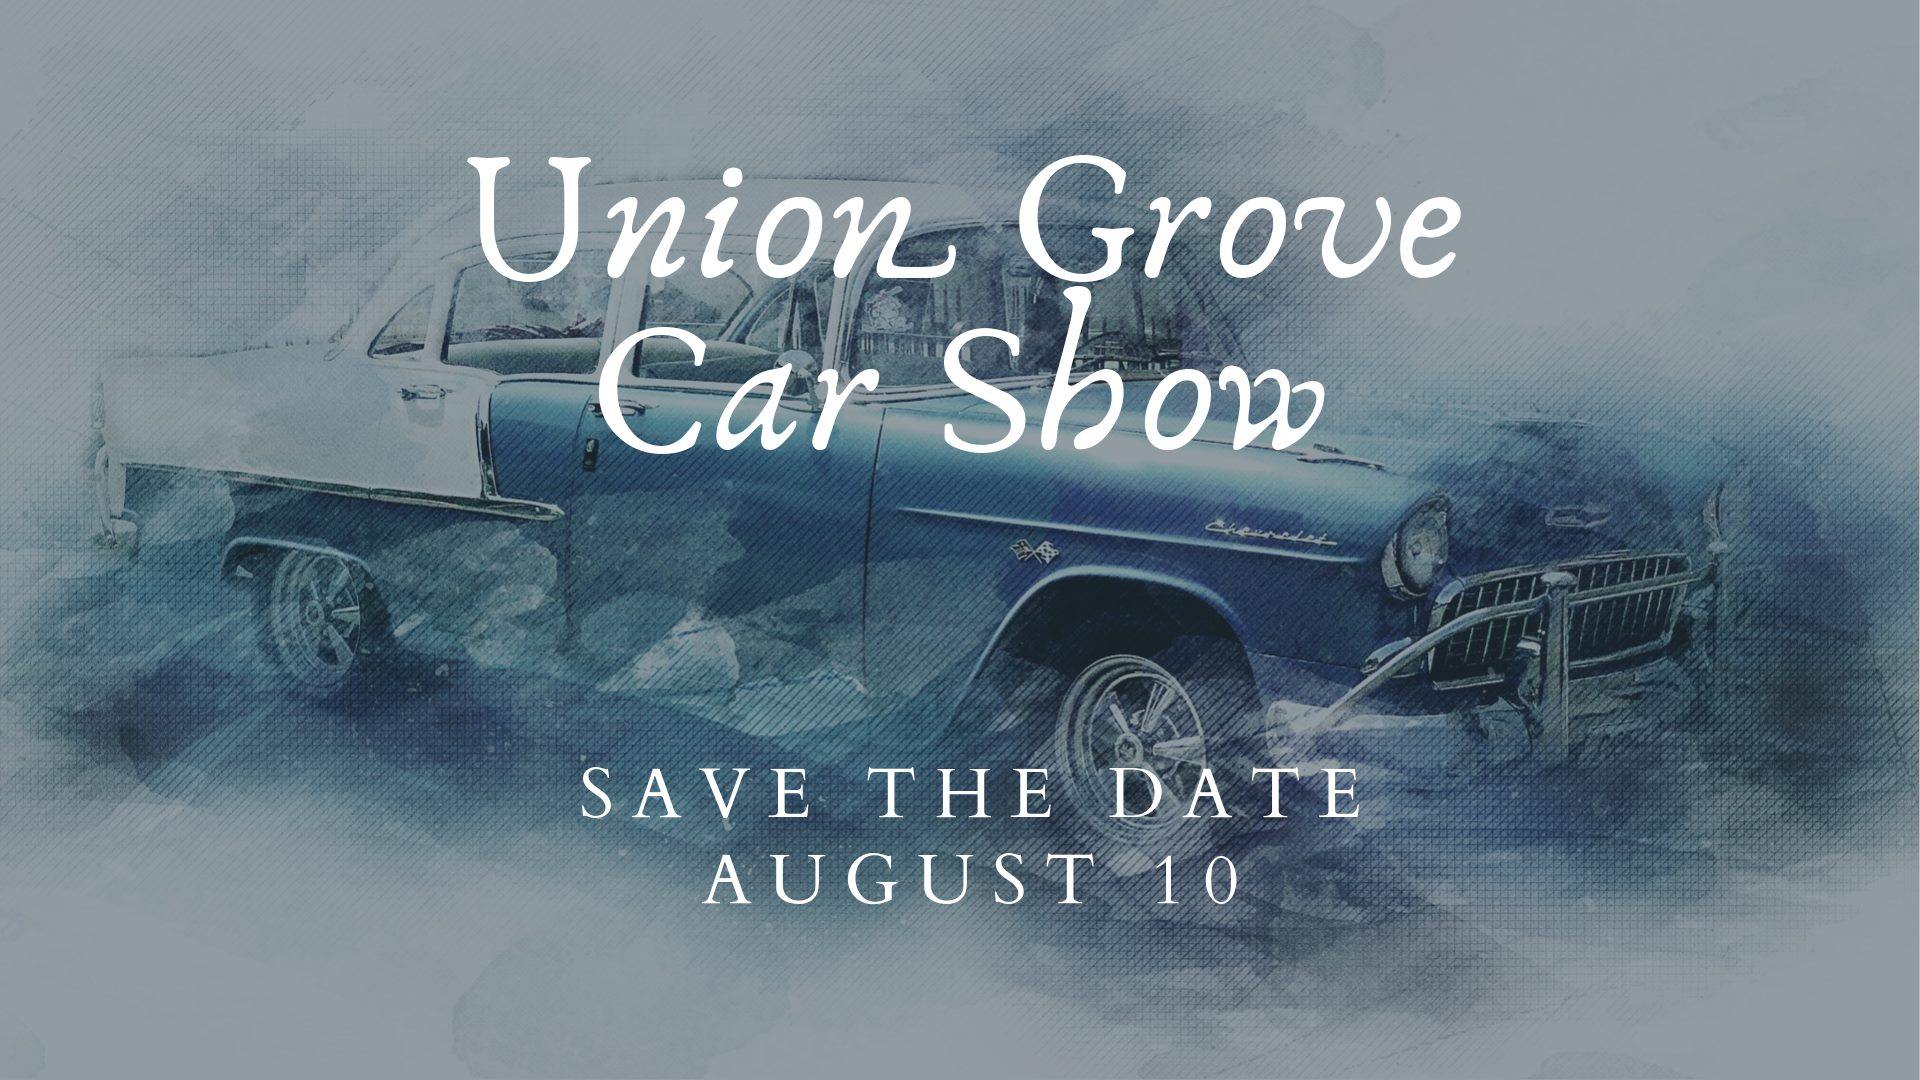 Union Grove Car Show @ Downtown Union Grove